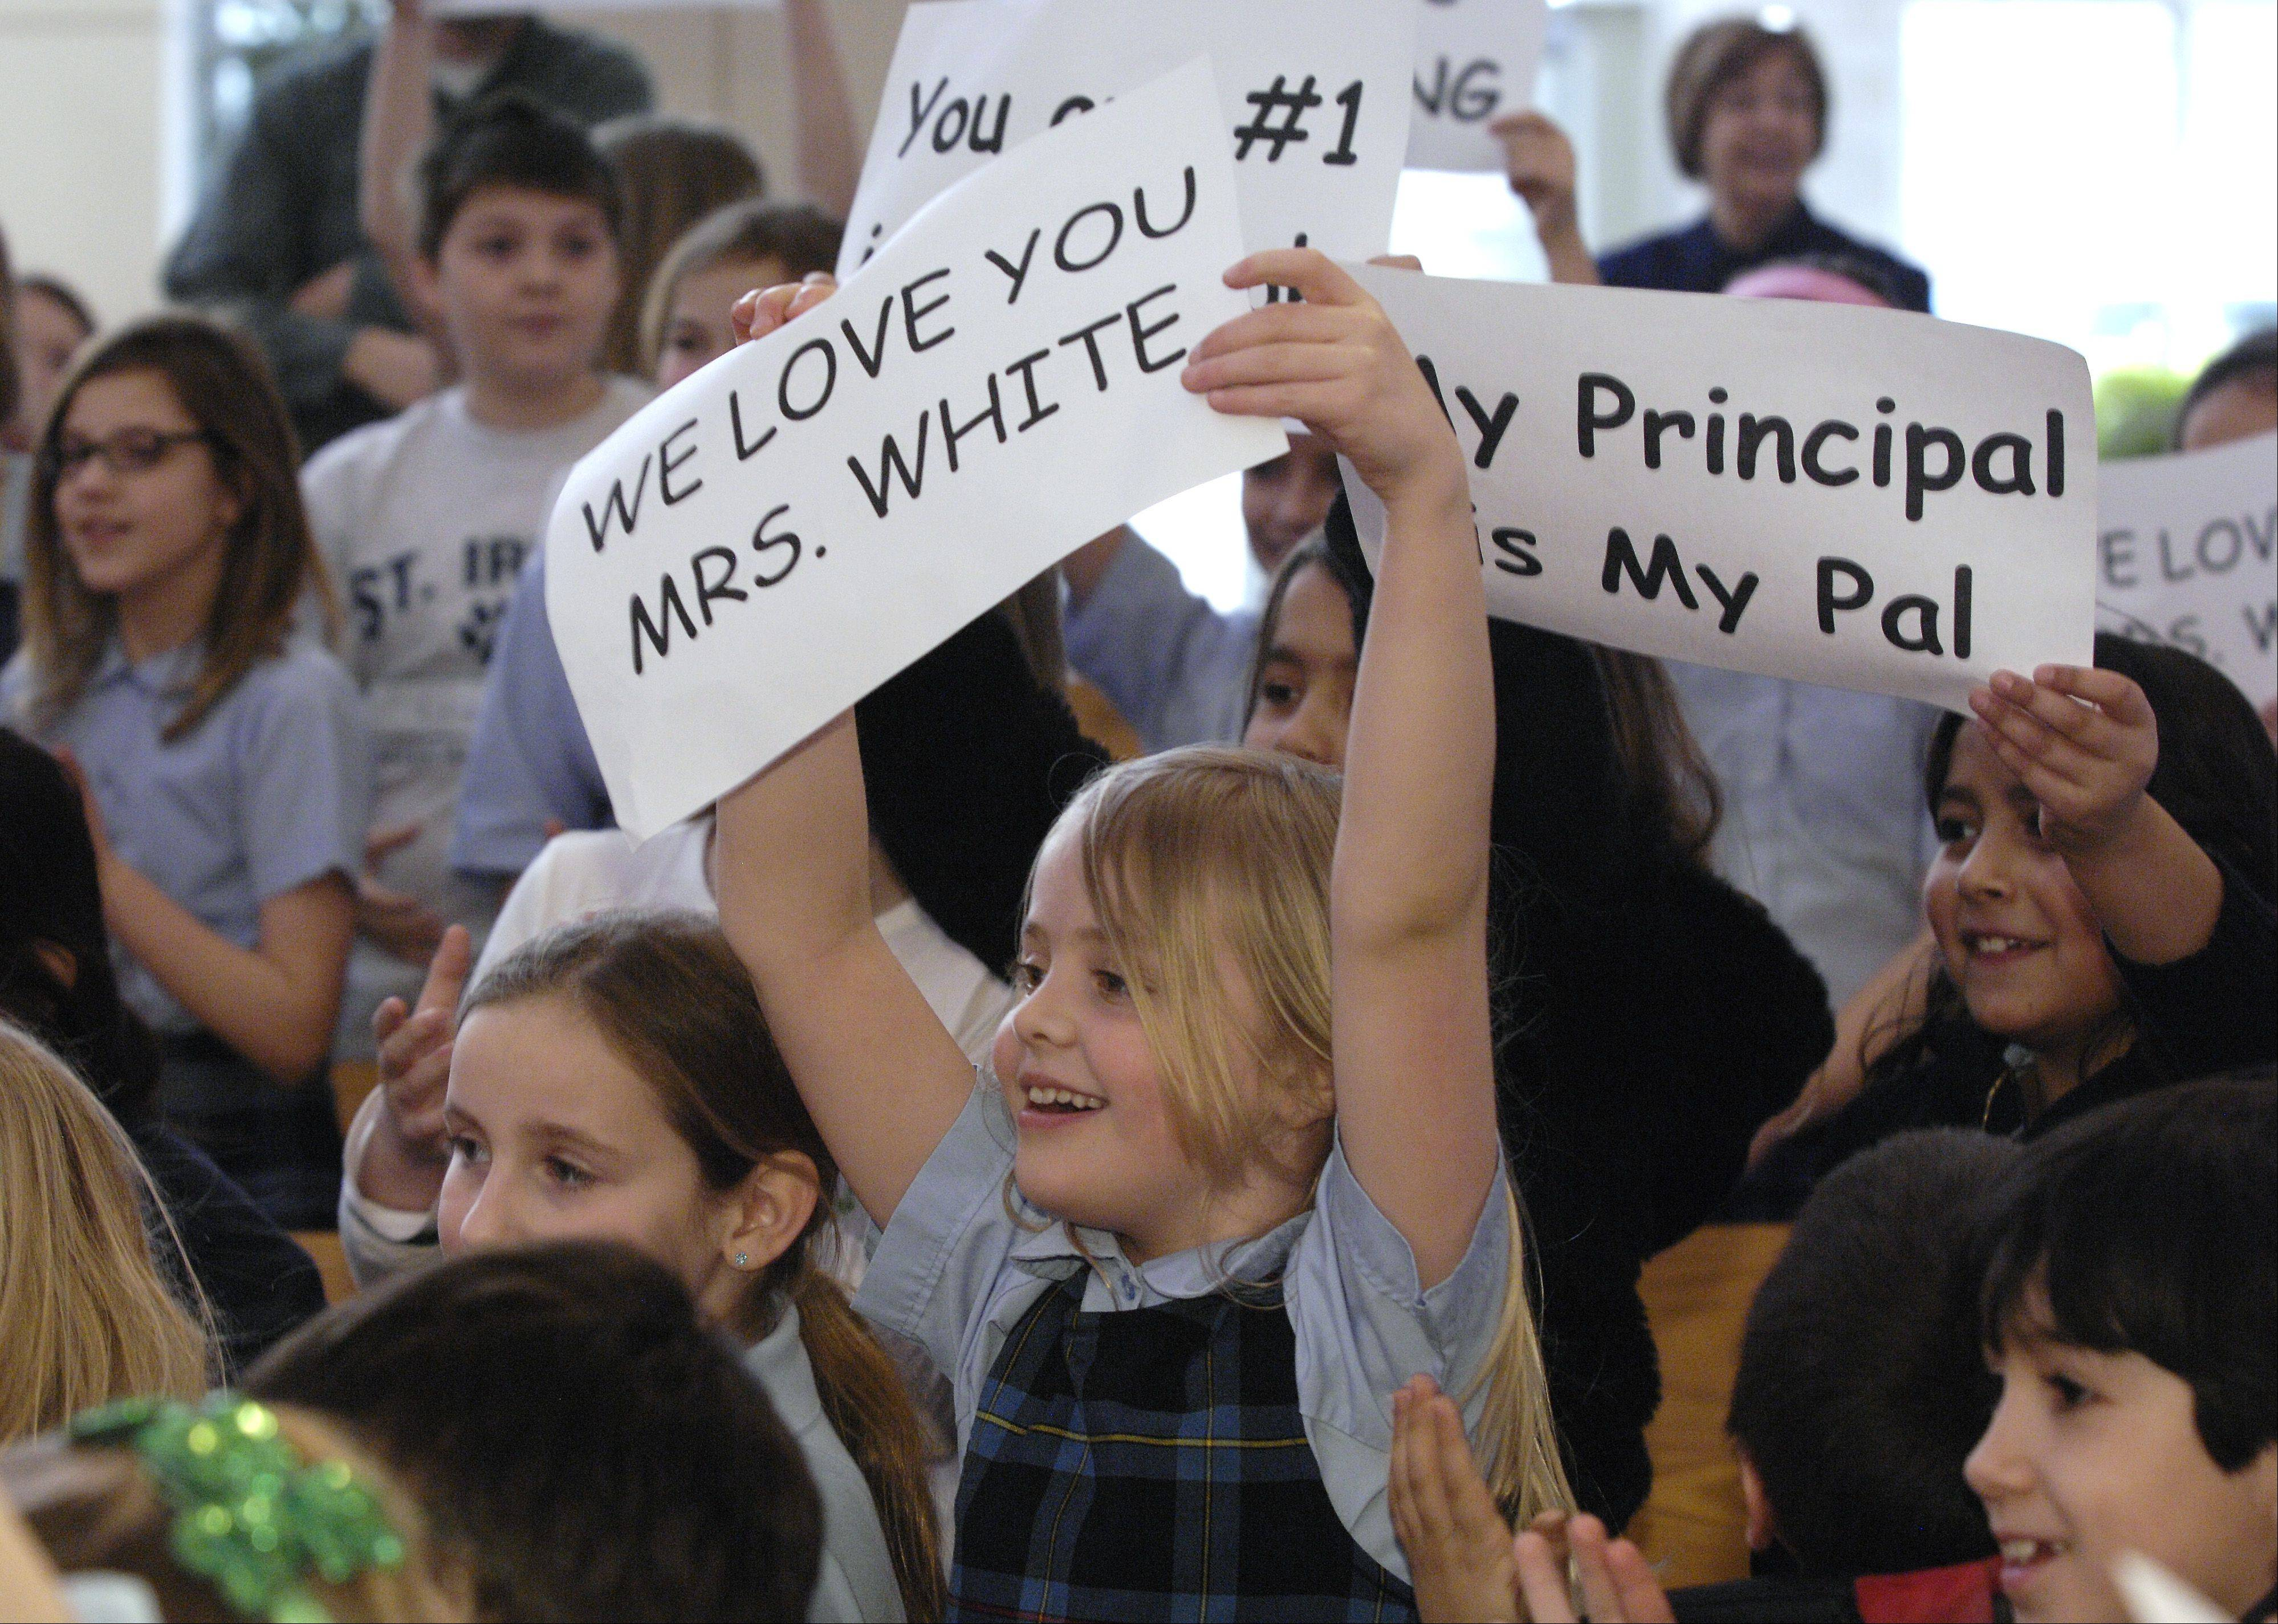 Students from St. Irene School in Warrenville cheer for their principal, Maureen White, after she has received the Diocesan Bishop Kaffer Outstanding Principal Award.